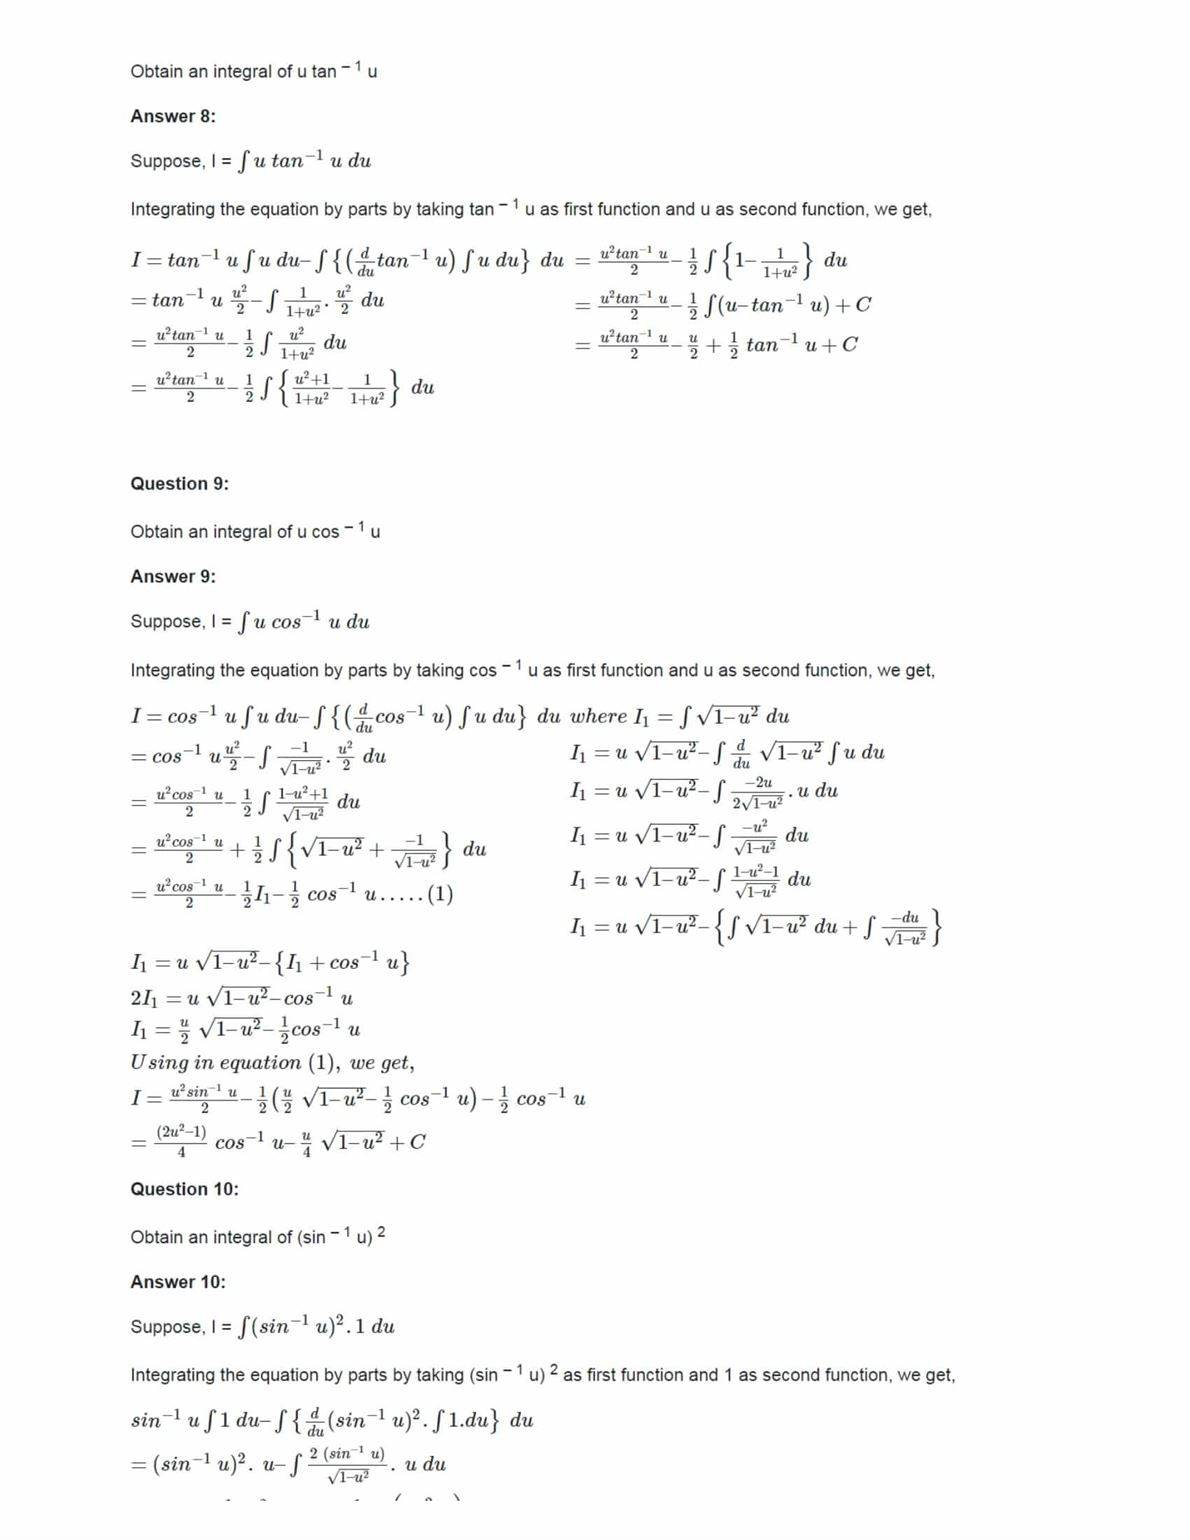 Ncert Solutions For Class 12 Maths Chapter 7 Ex 7.6